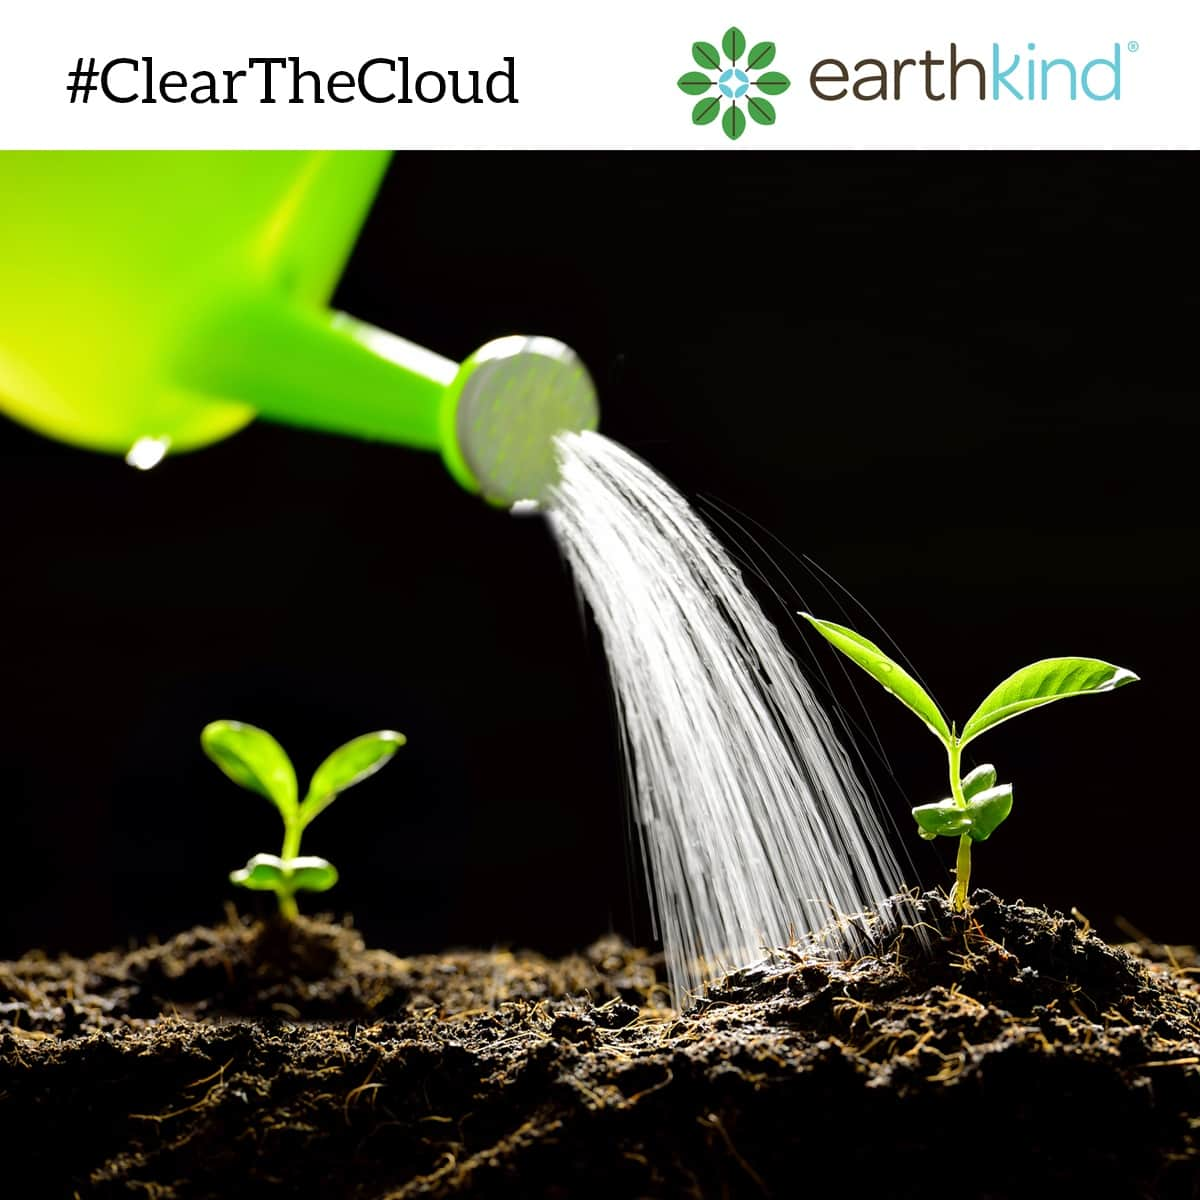 Use Organic Compost to Save on Watering for Plants #ClearTheCloud, earthkind